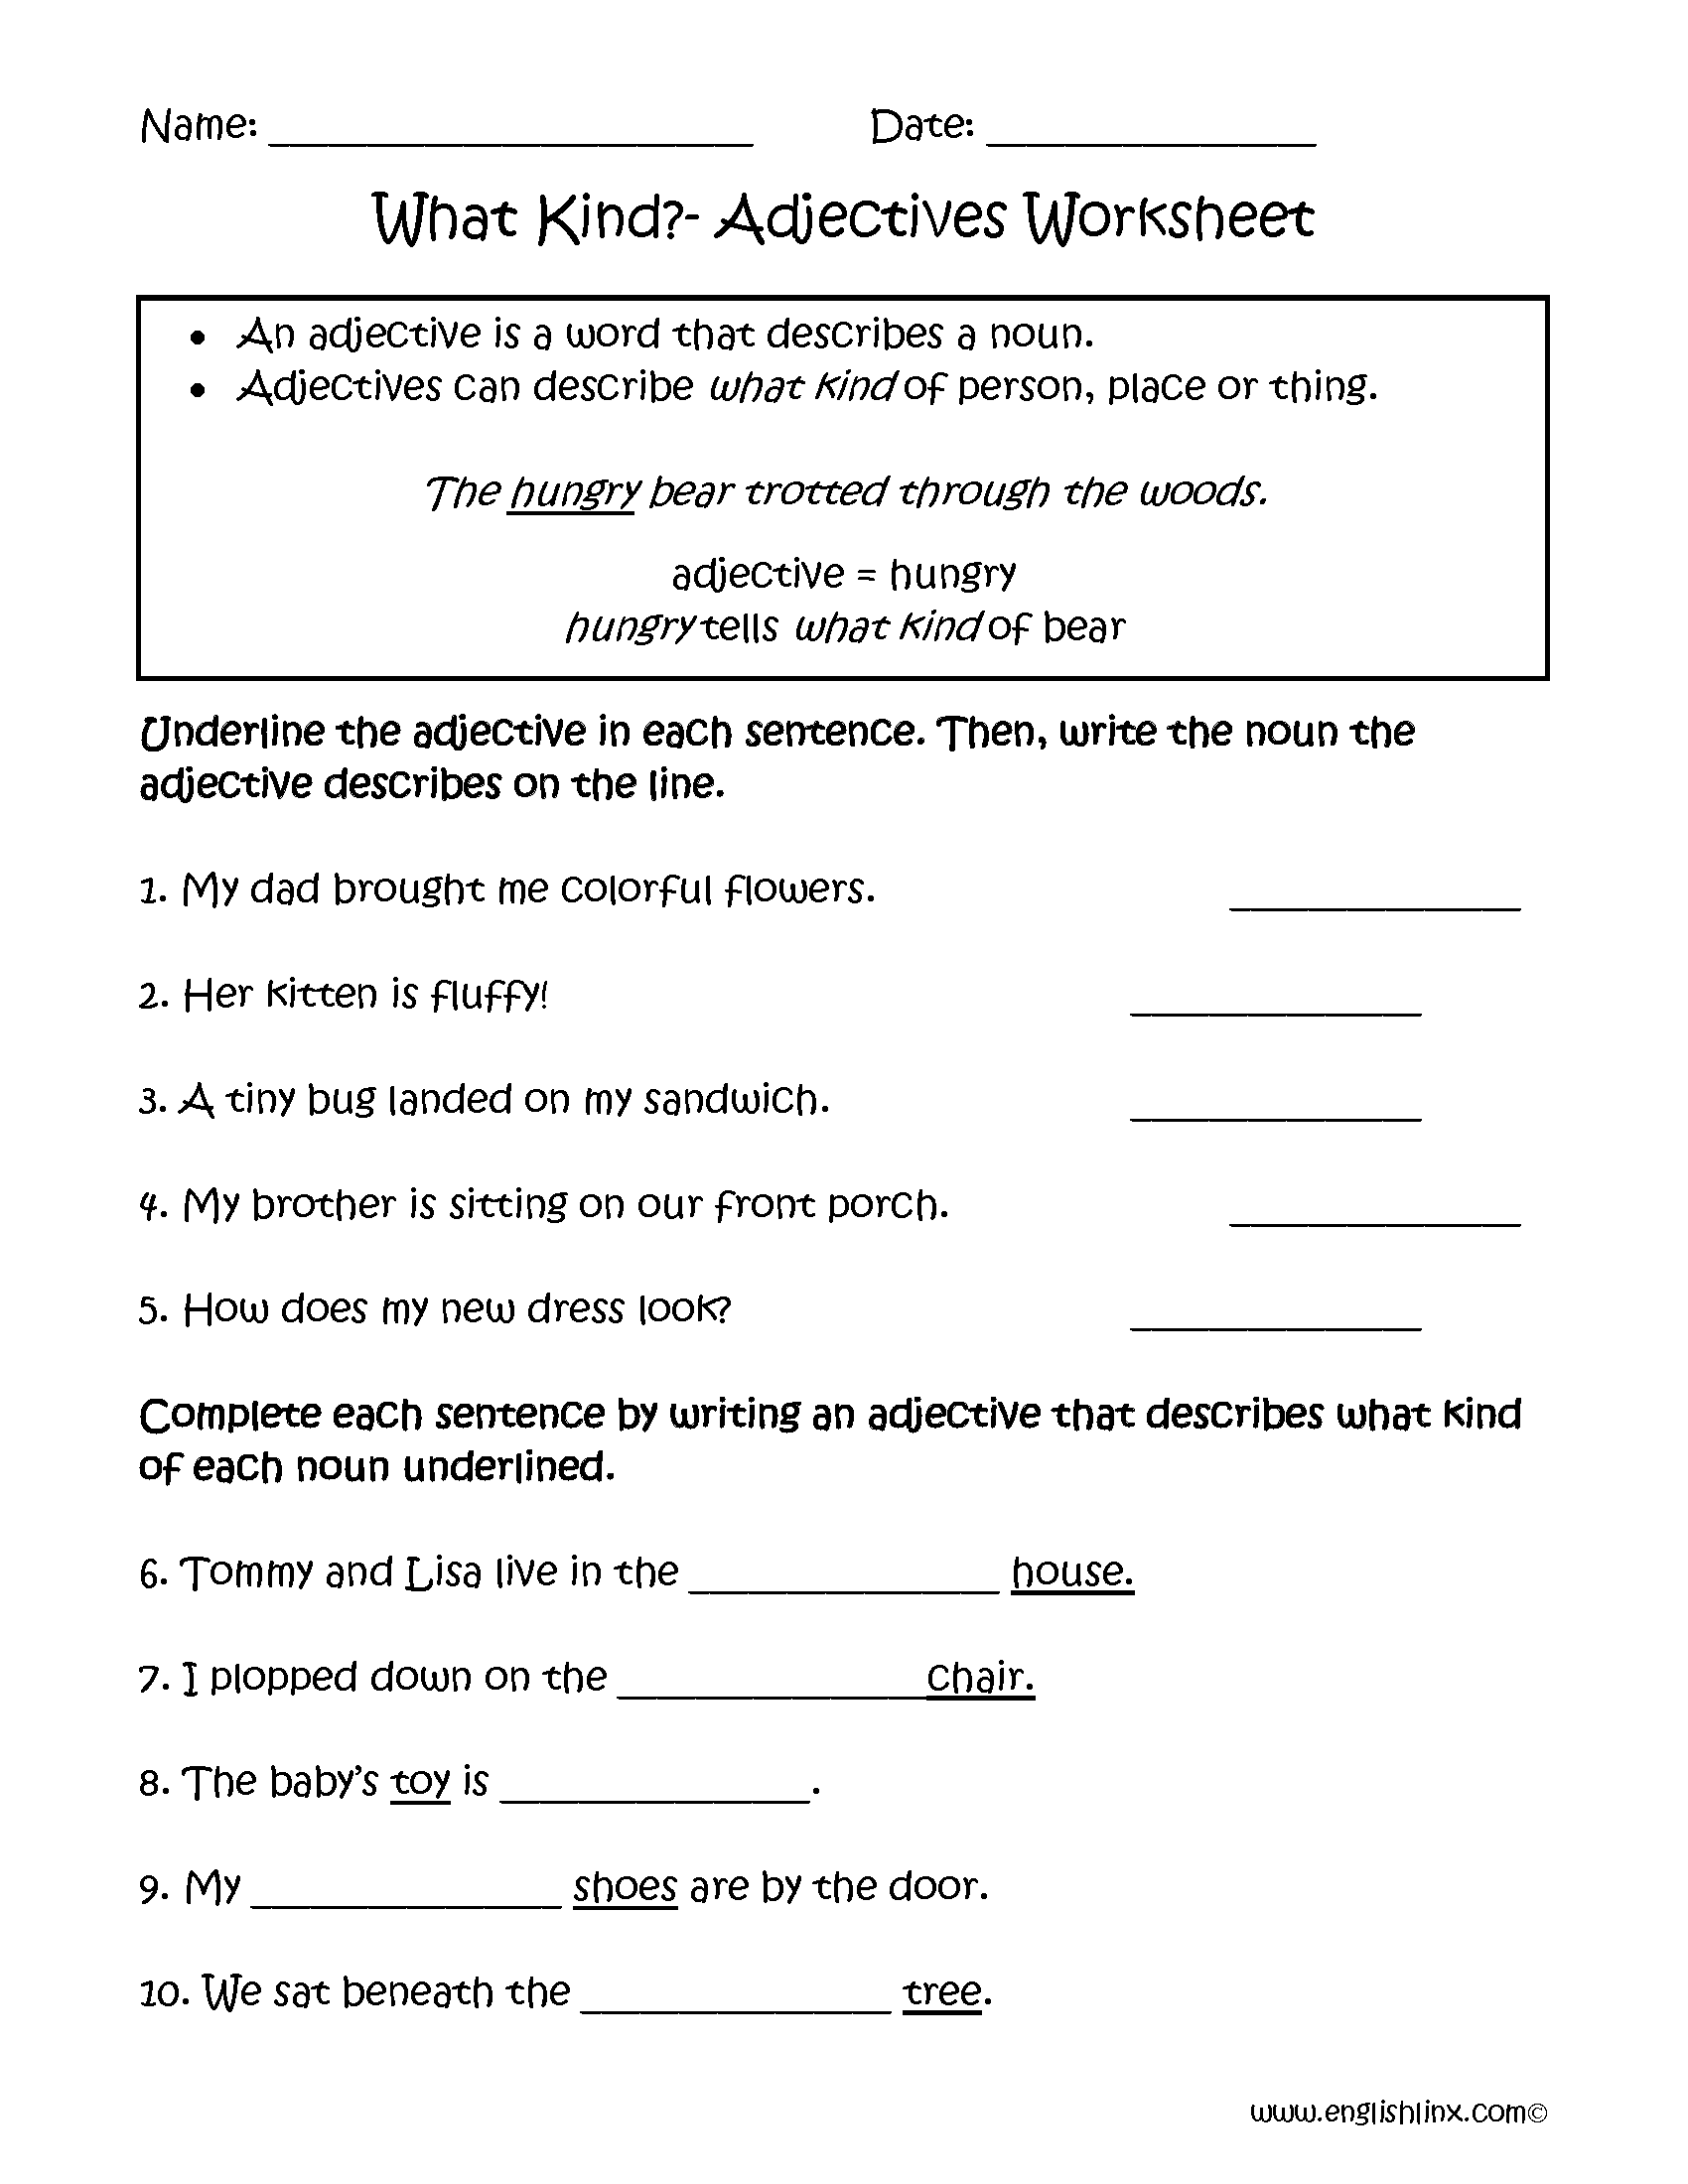 Worksheet Adjectives Exercises For Grade 5 adjectives worksheets regular worksheets